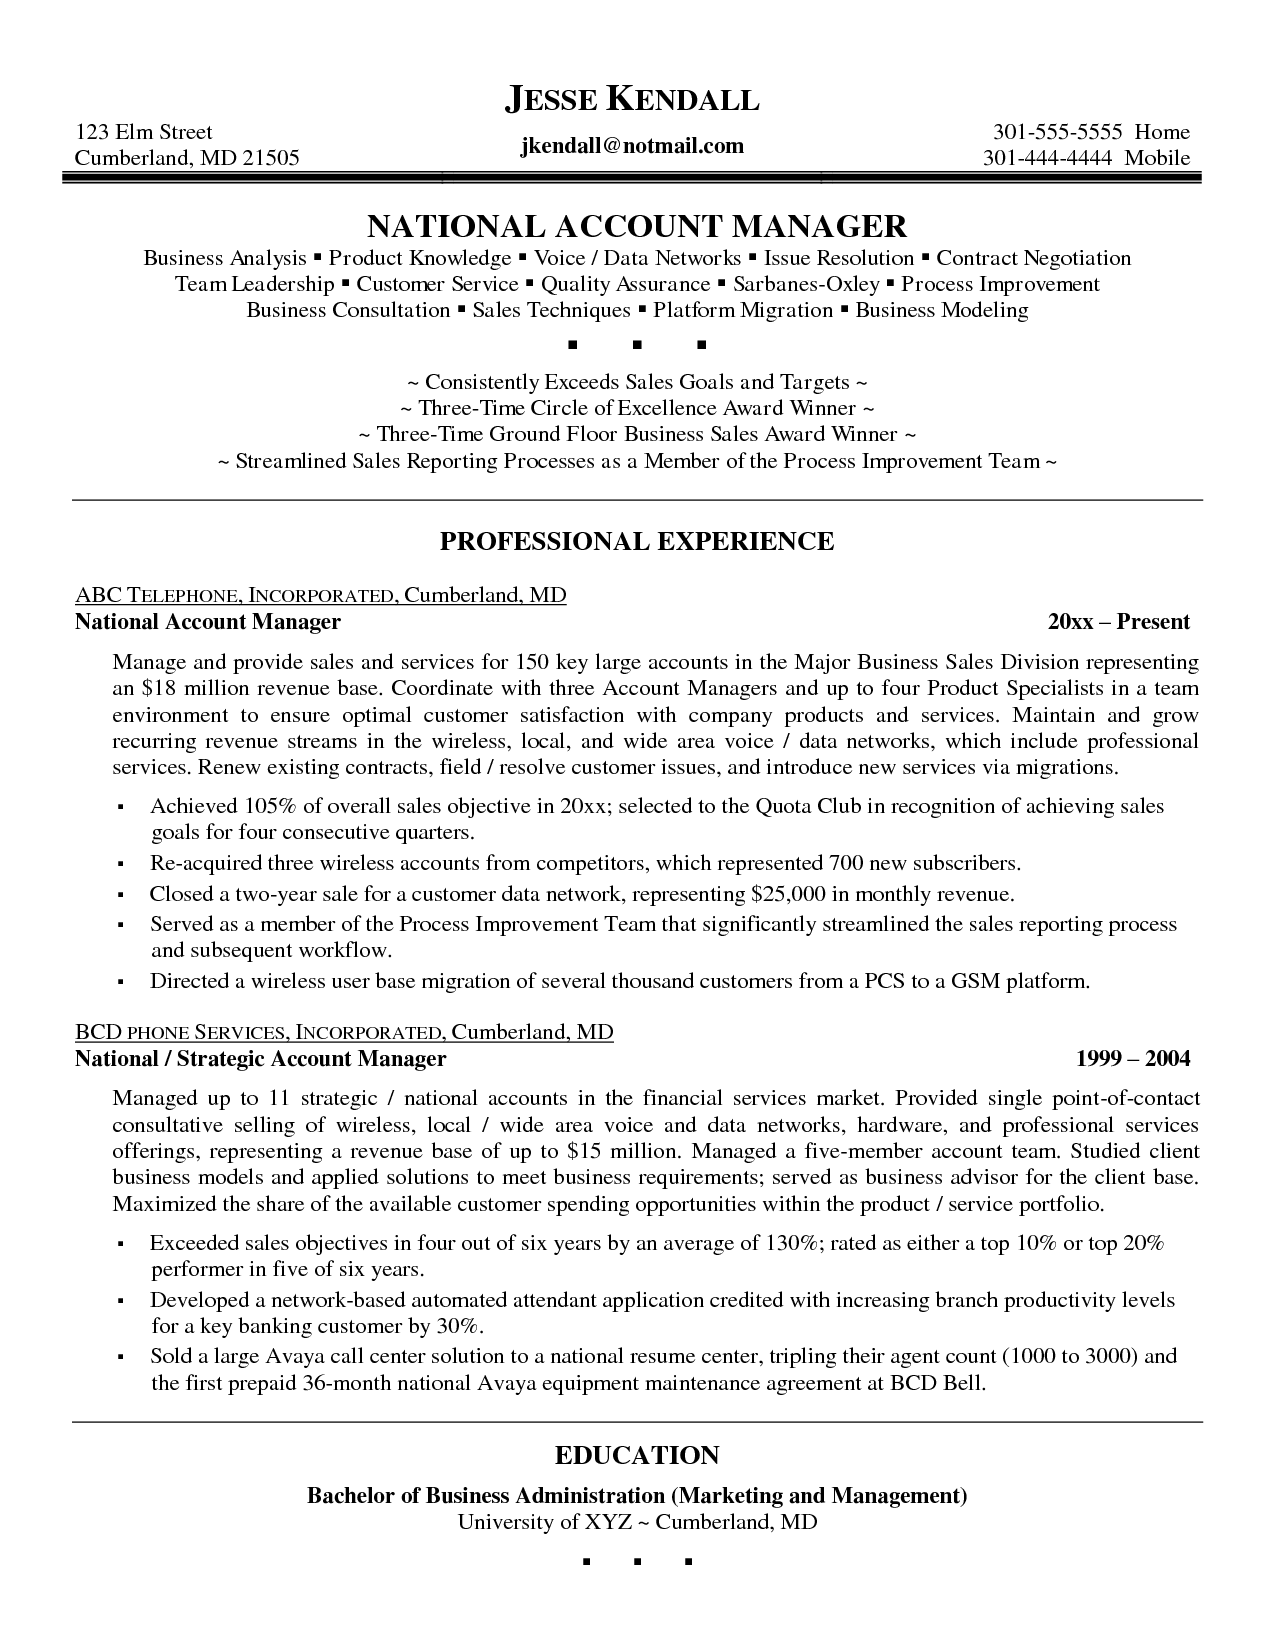 Example Accounting Manager Resume Http Www Resumecareer Info Example Accounting Manager Resume 3